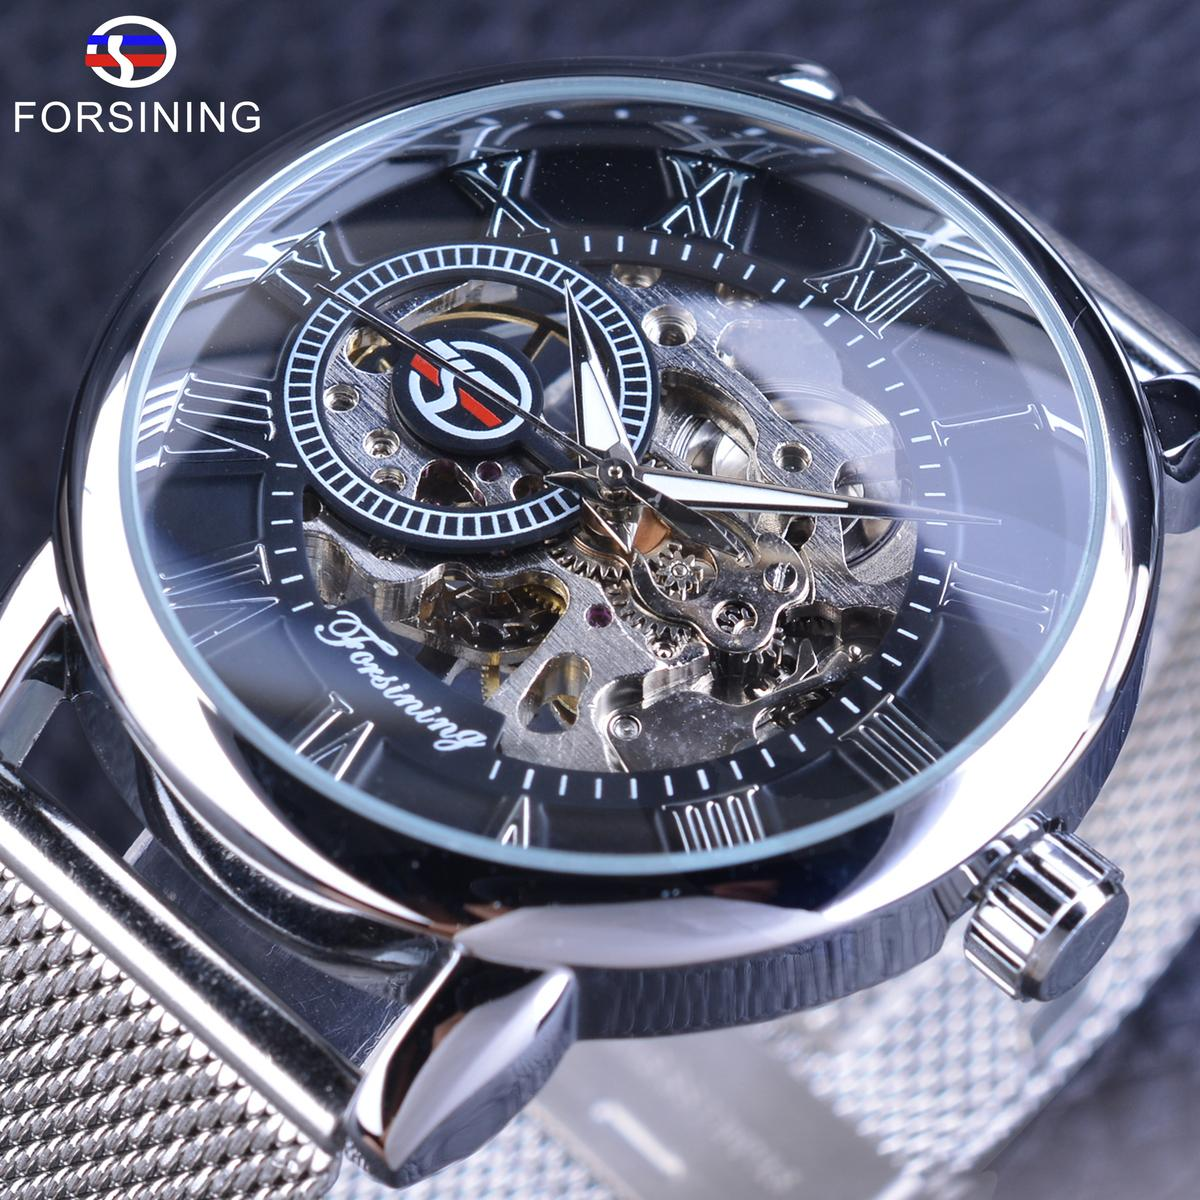 Forsining Mechanical Watches Fashion Skeleton Clock Silver Stainless Steel Band Casual Men's Wrist Watch Luminous Hands S917